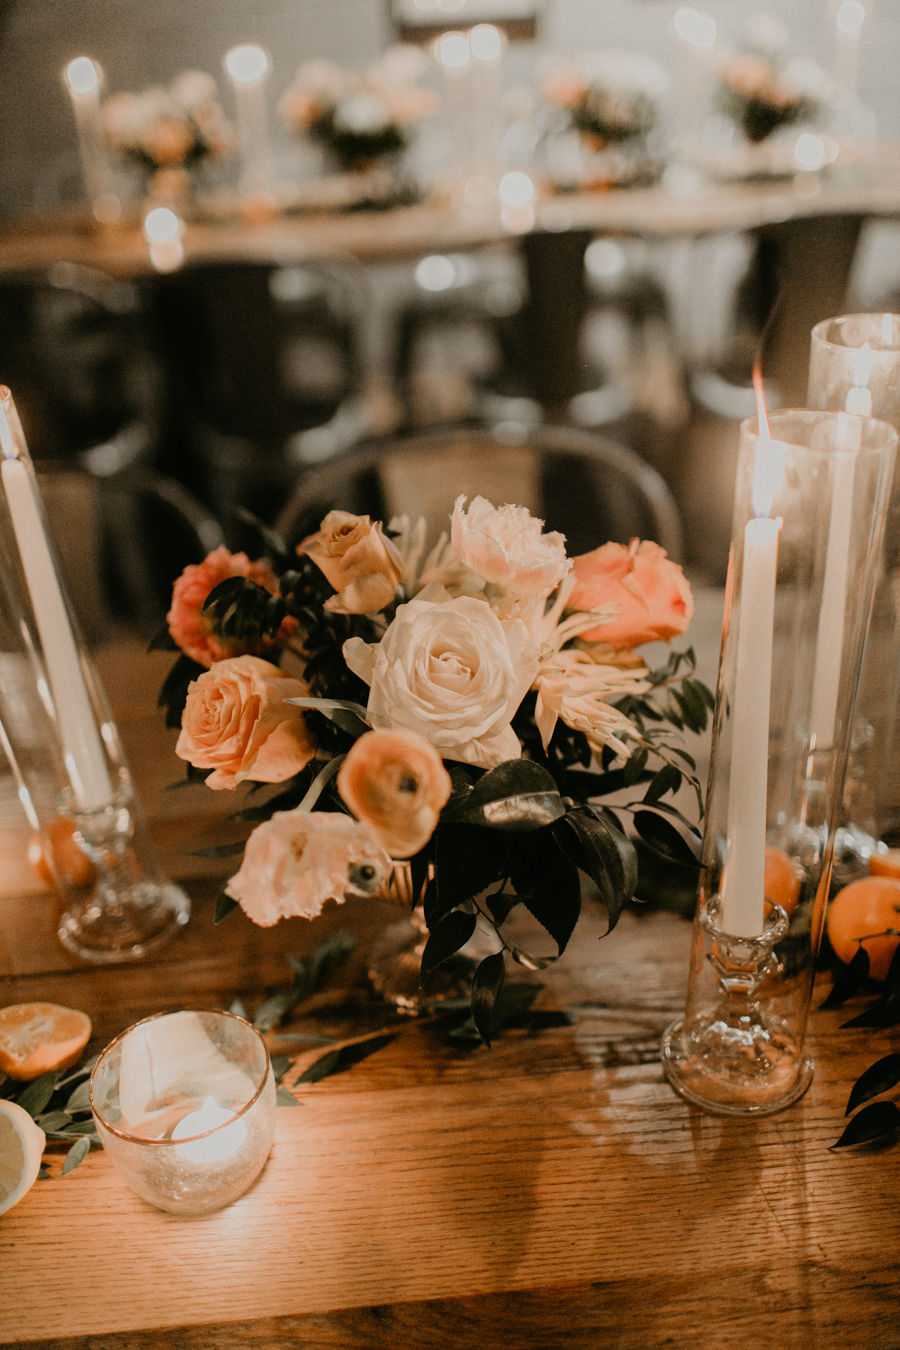 Stephanie And Kent Bailey Tampa Florida Romantic Wedding At Coppertail Brewery in Ybor Florist Fire BHLDN Mis En Place Ibex String Quartet Let Them Eat Cake -99.jpg